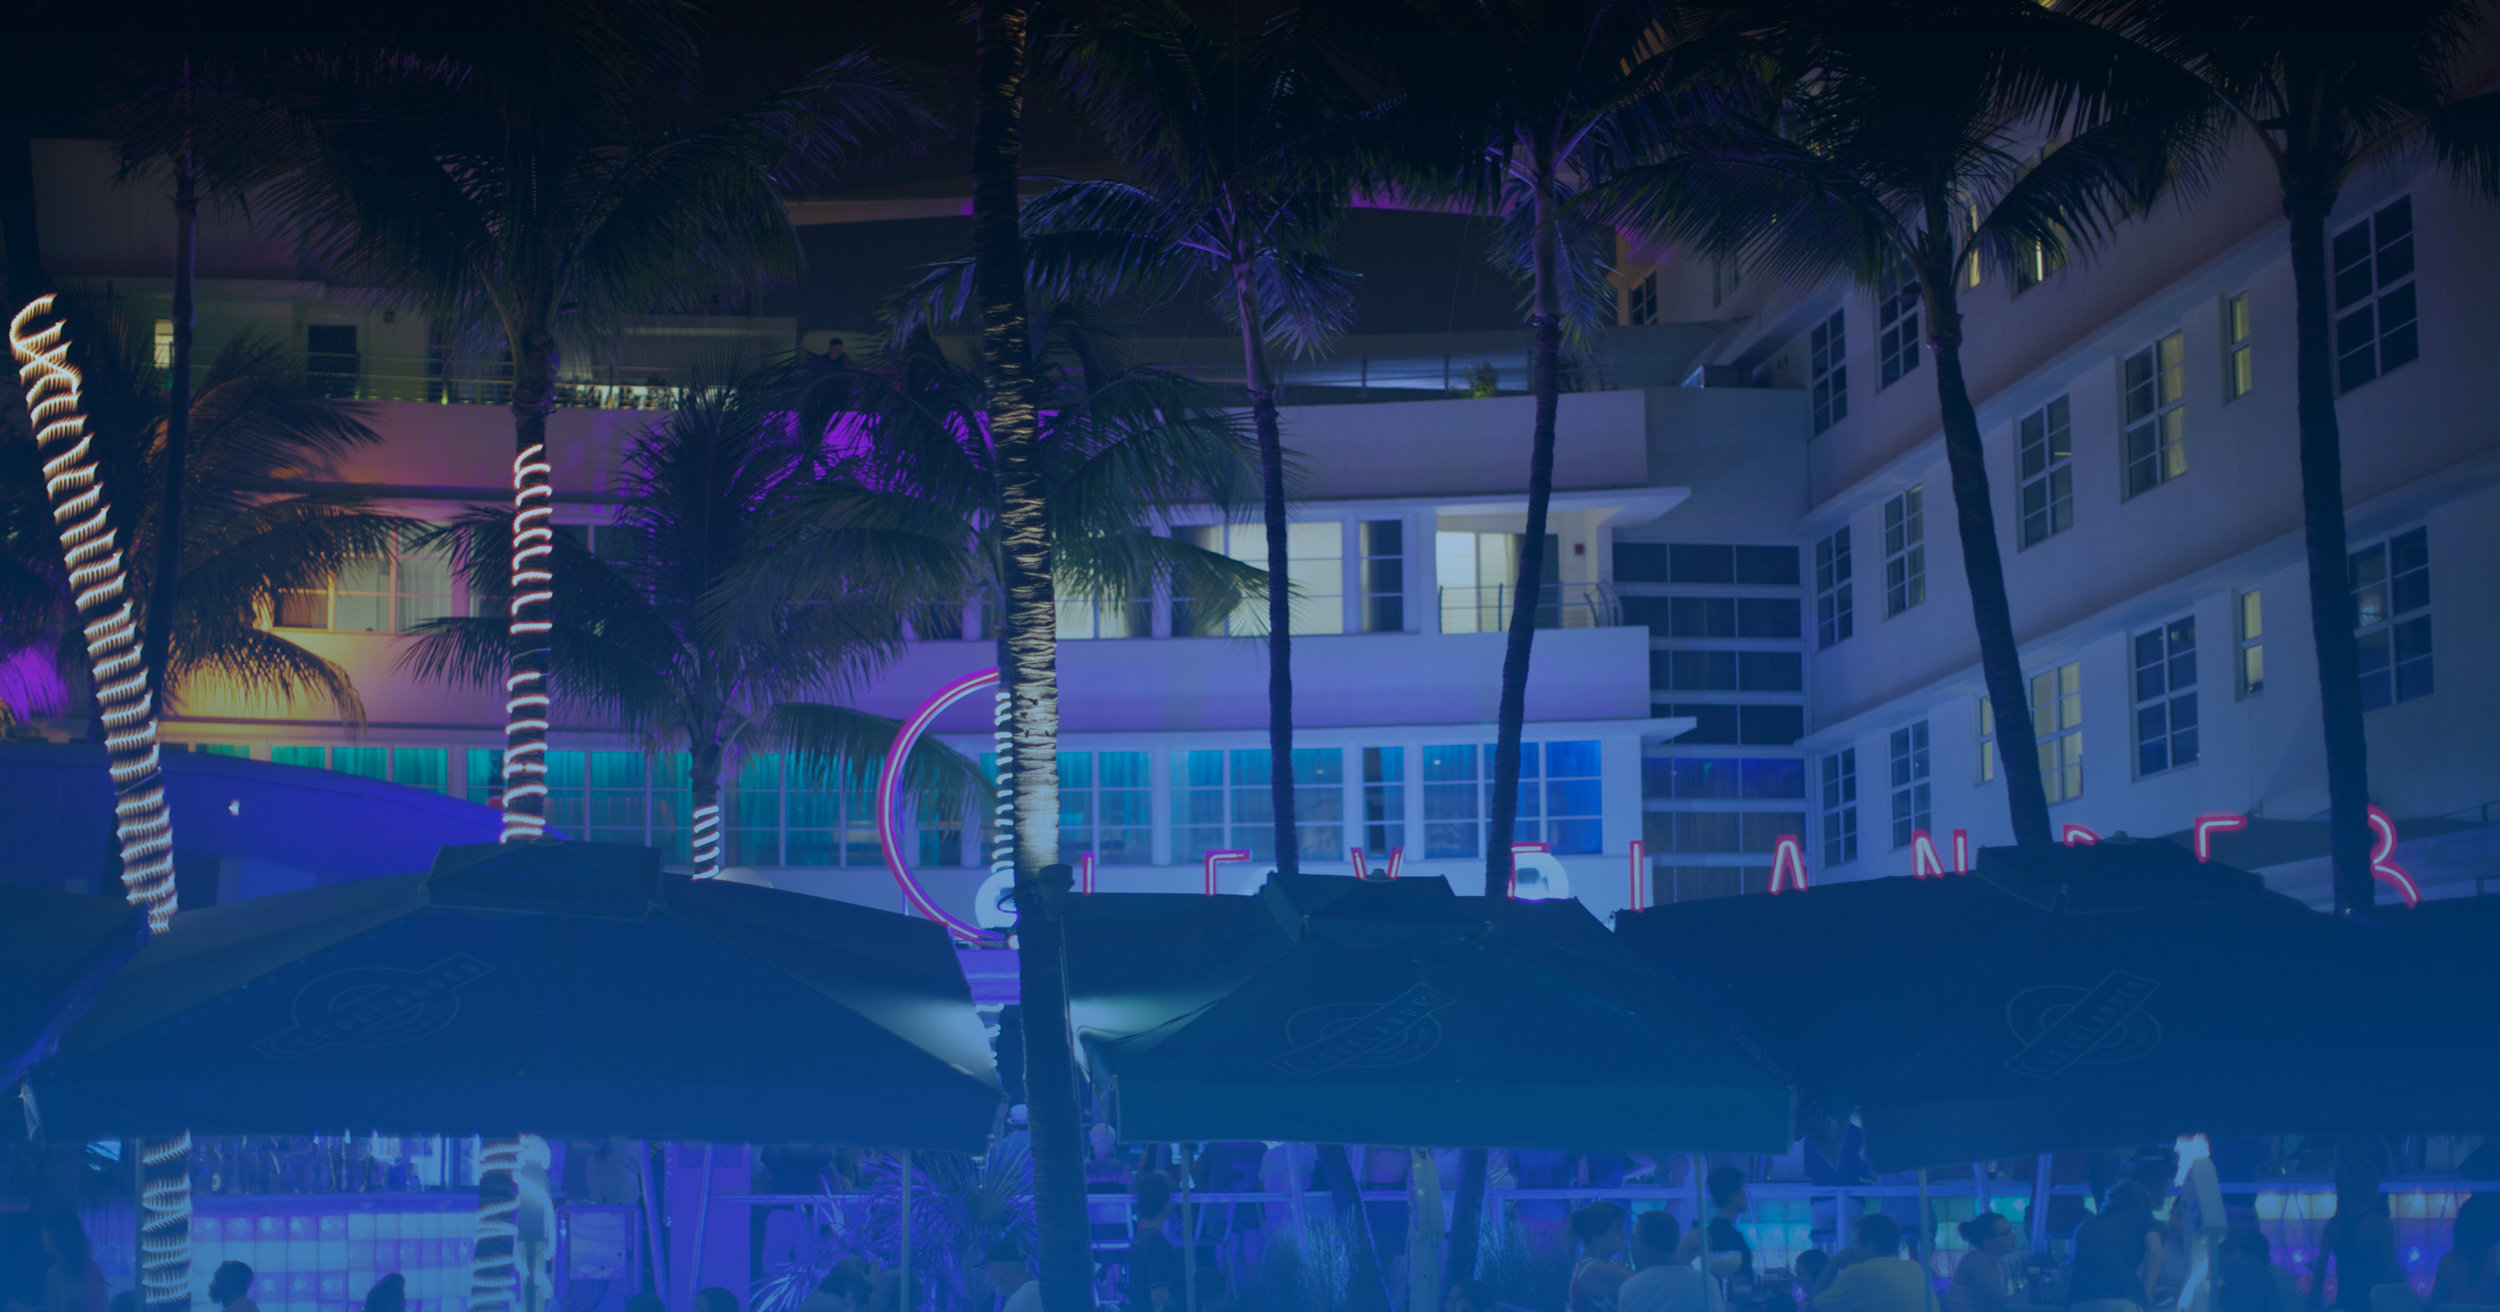 The Mission of Miami Art Weekis to promote & support emerging & established artists, galleries, arts organizations & appreciation of the arts, on an international stage -